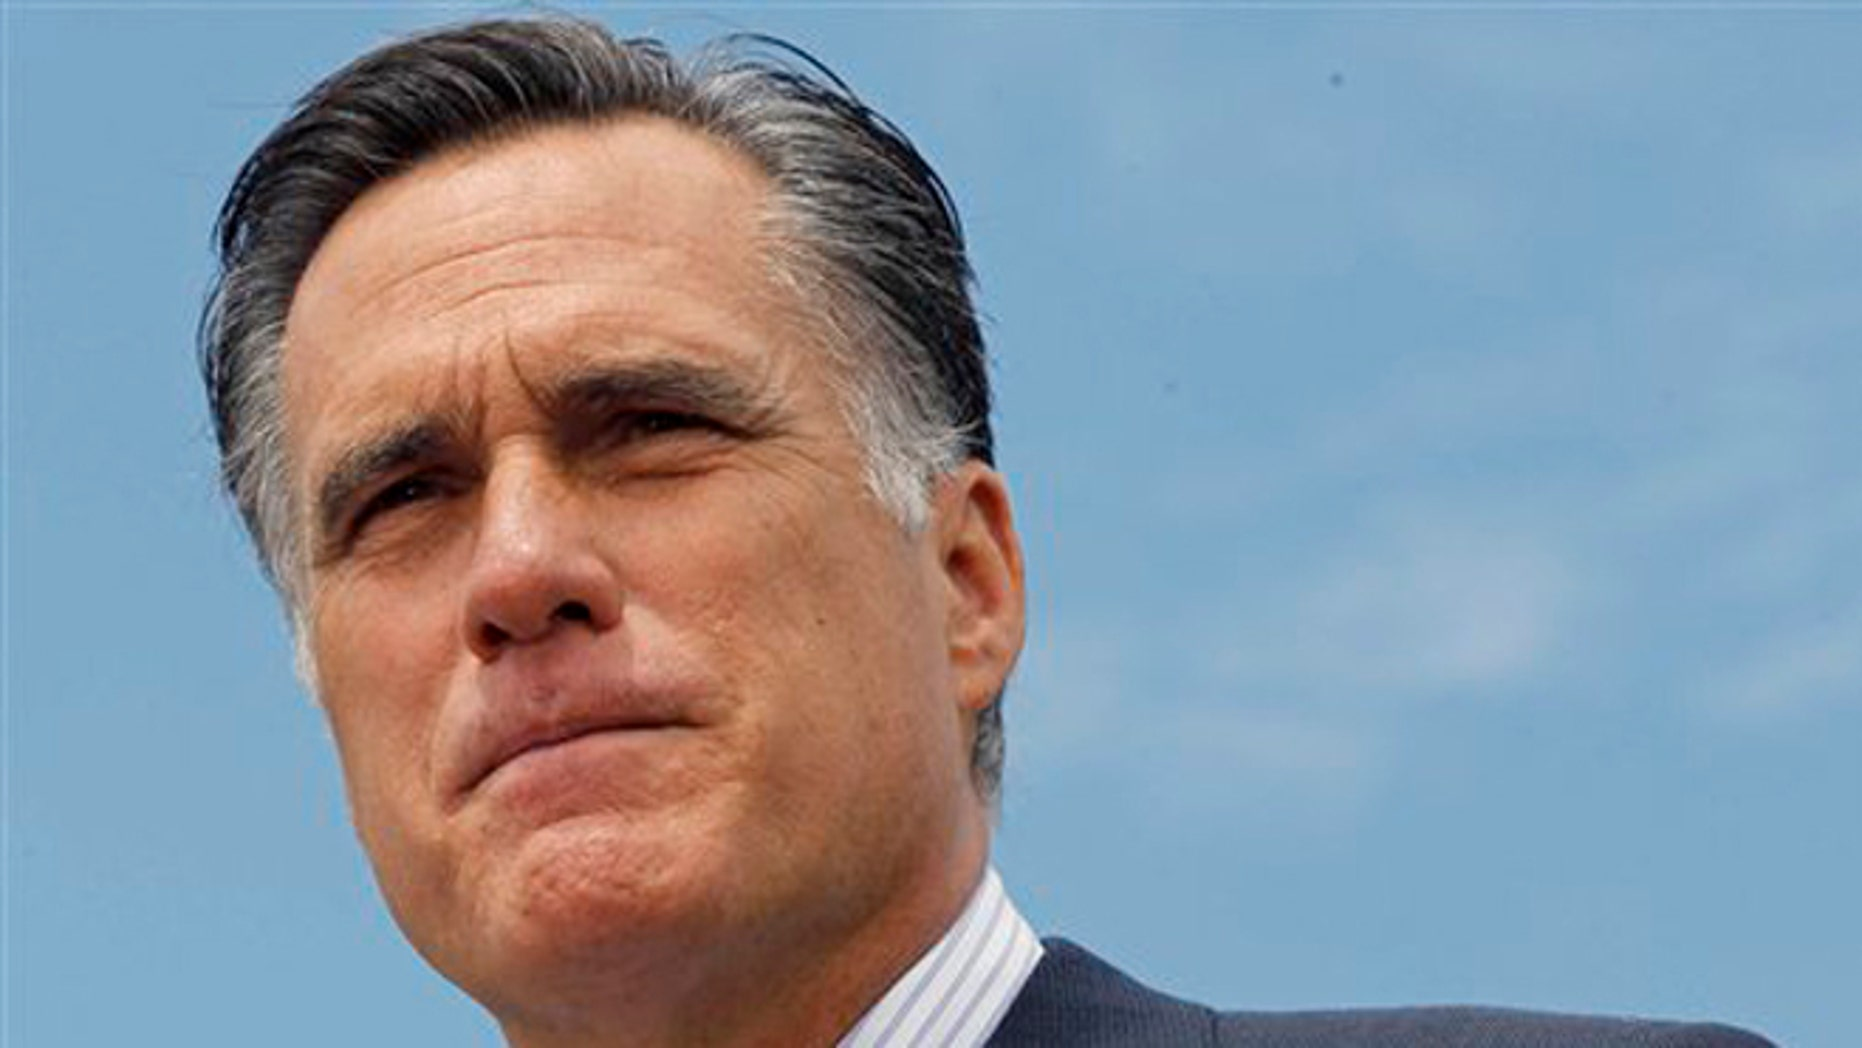 Republican presidential candidate, former Massachusetts Gov. Mitt Romney, speaks at a campaign event in Bow, N.H., Friday, July 20, 2012. Romney auditions on the international stage next week as he travels to England, Israel and Poland looking to establish credibility as a potential commander in chief in his challenge to President Barack Obama. (AP Photo/Charles Dharapak)